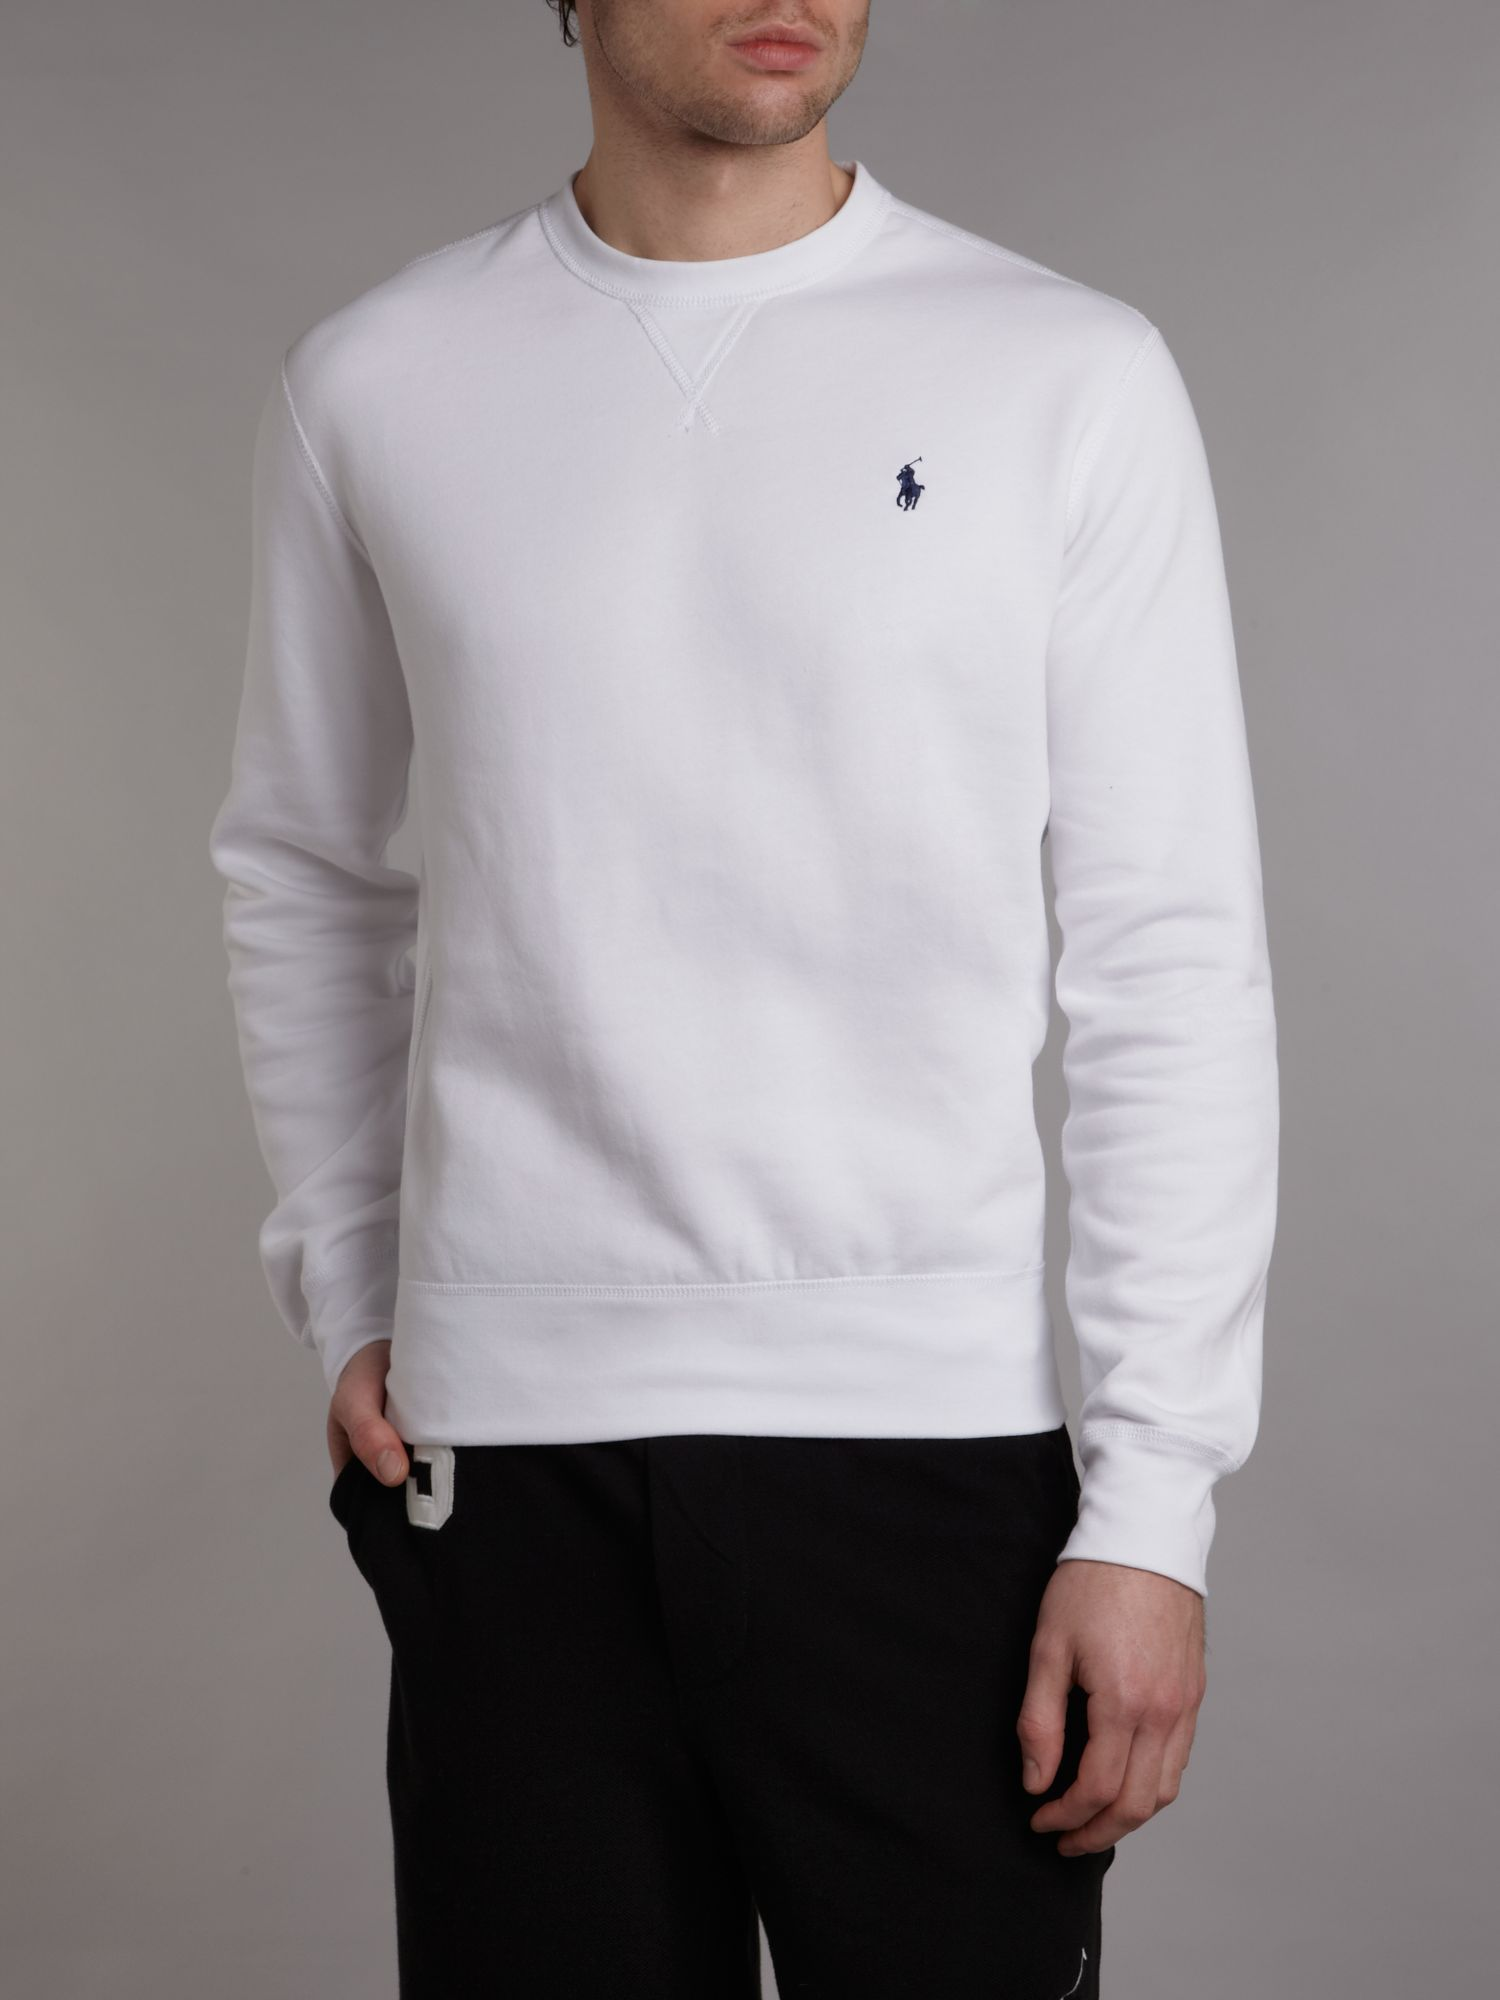 V Neck Sweaters Mens